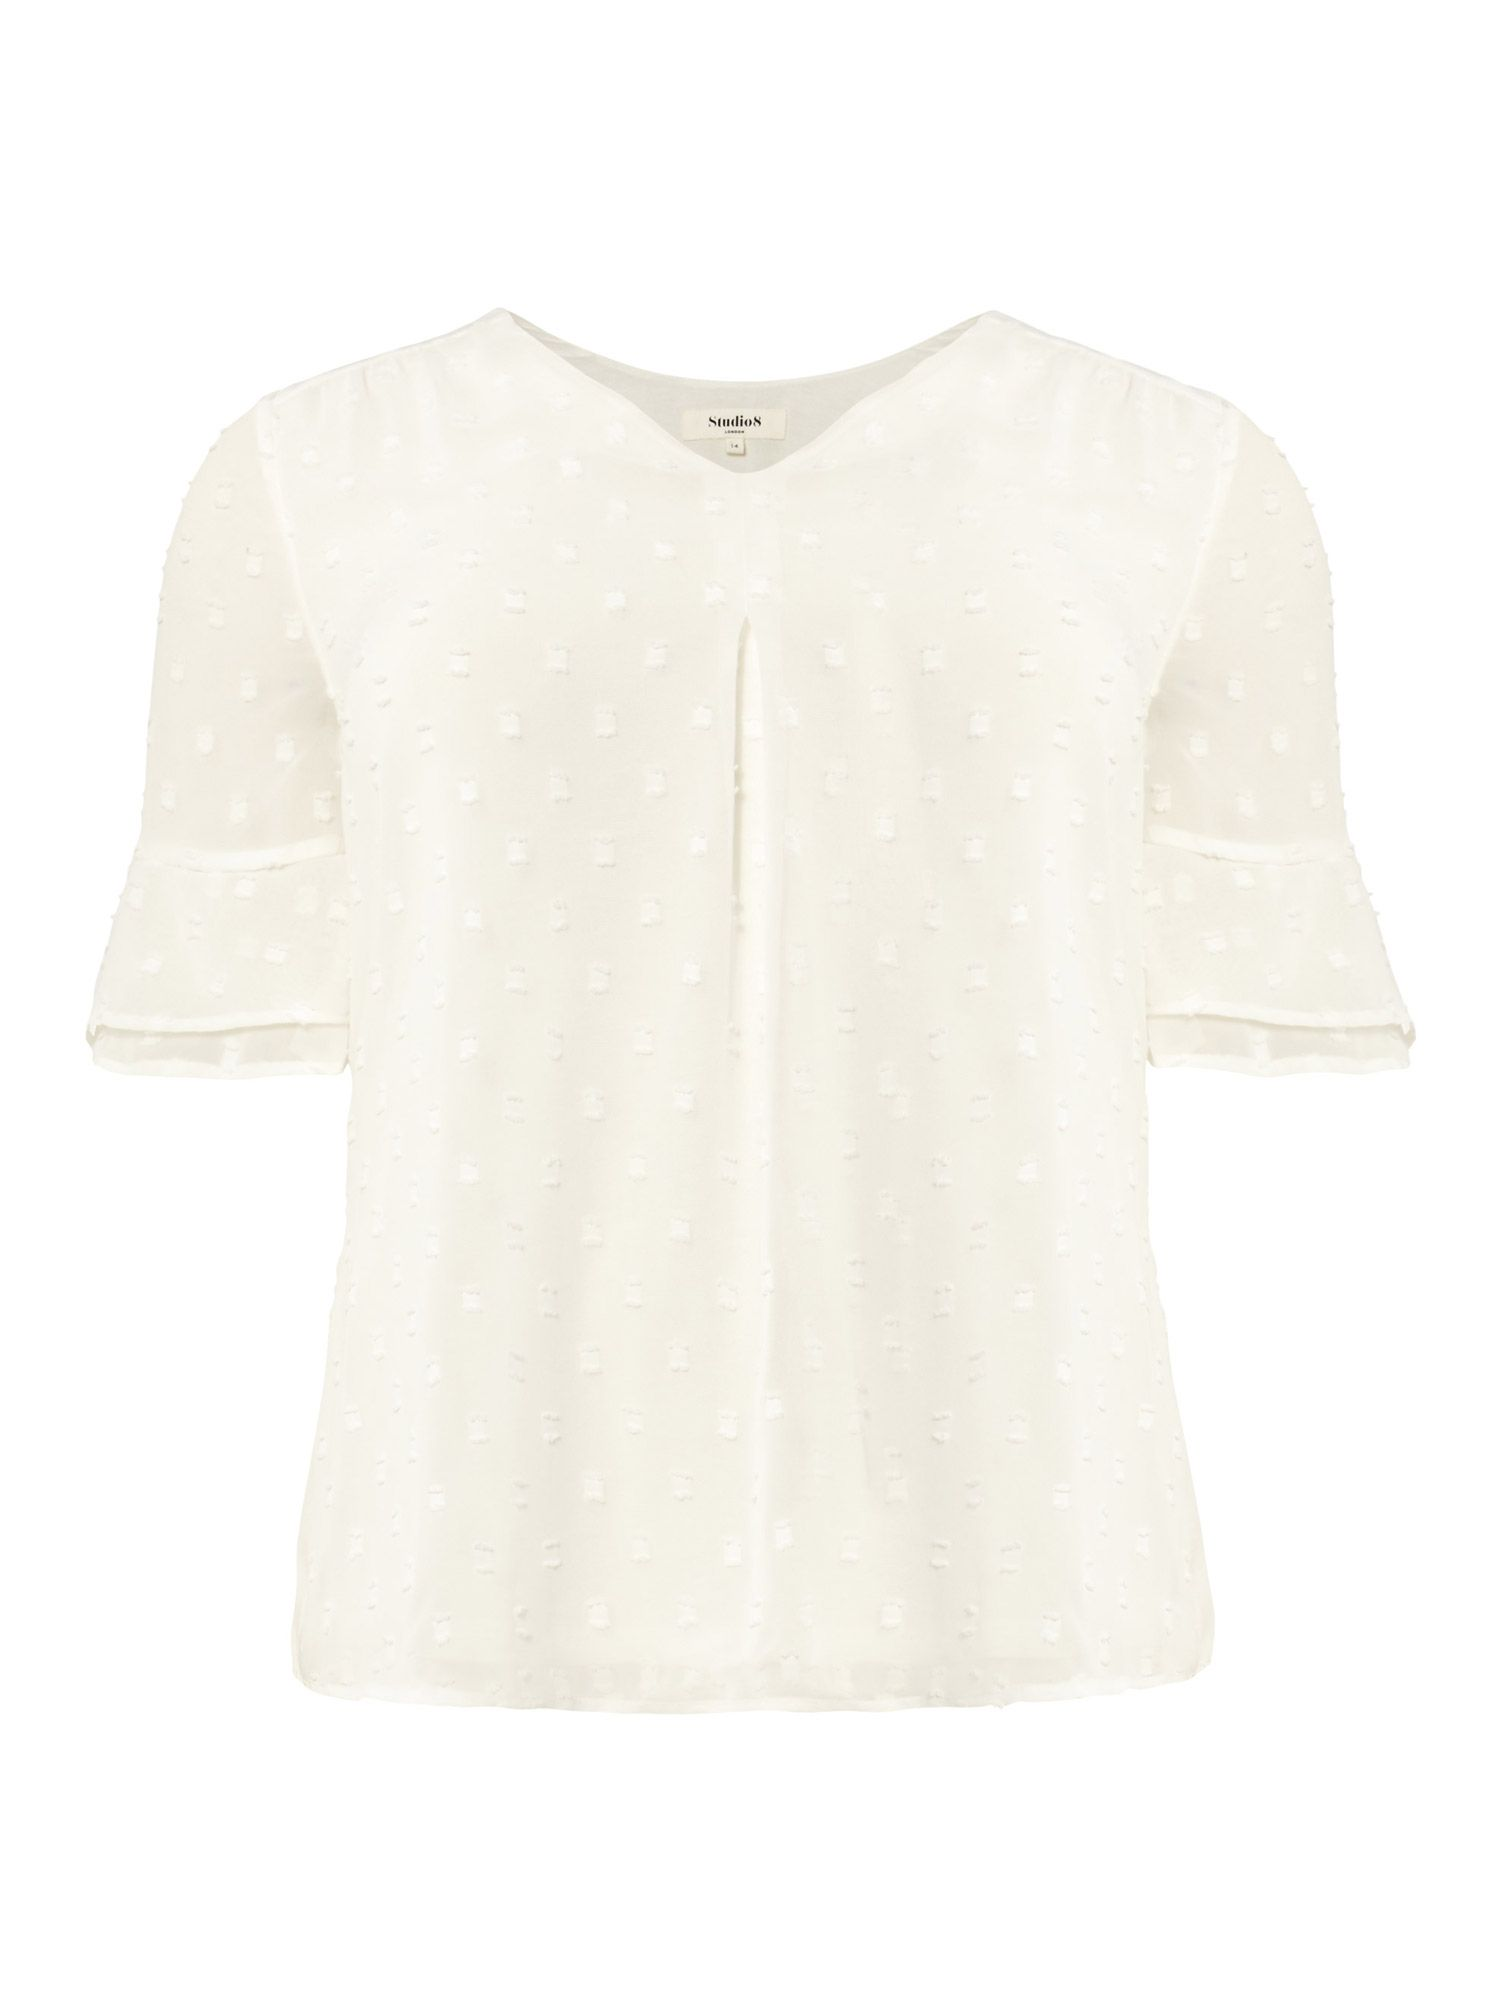 Studio 8 Lisa-Marie Top, Cream